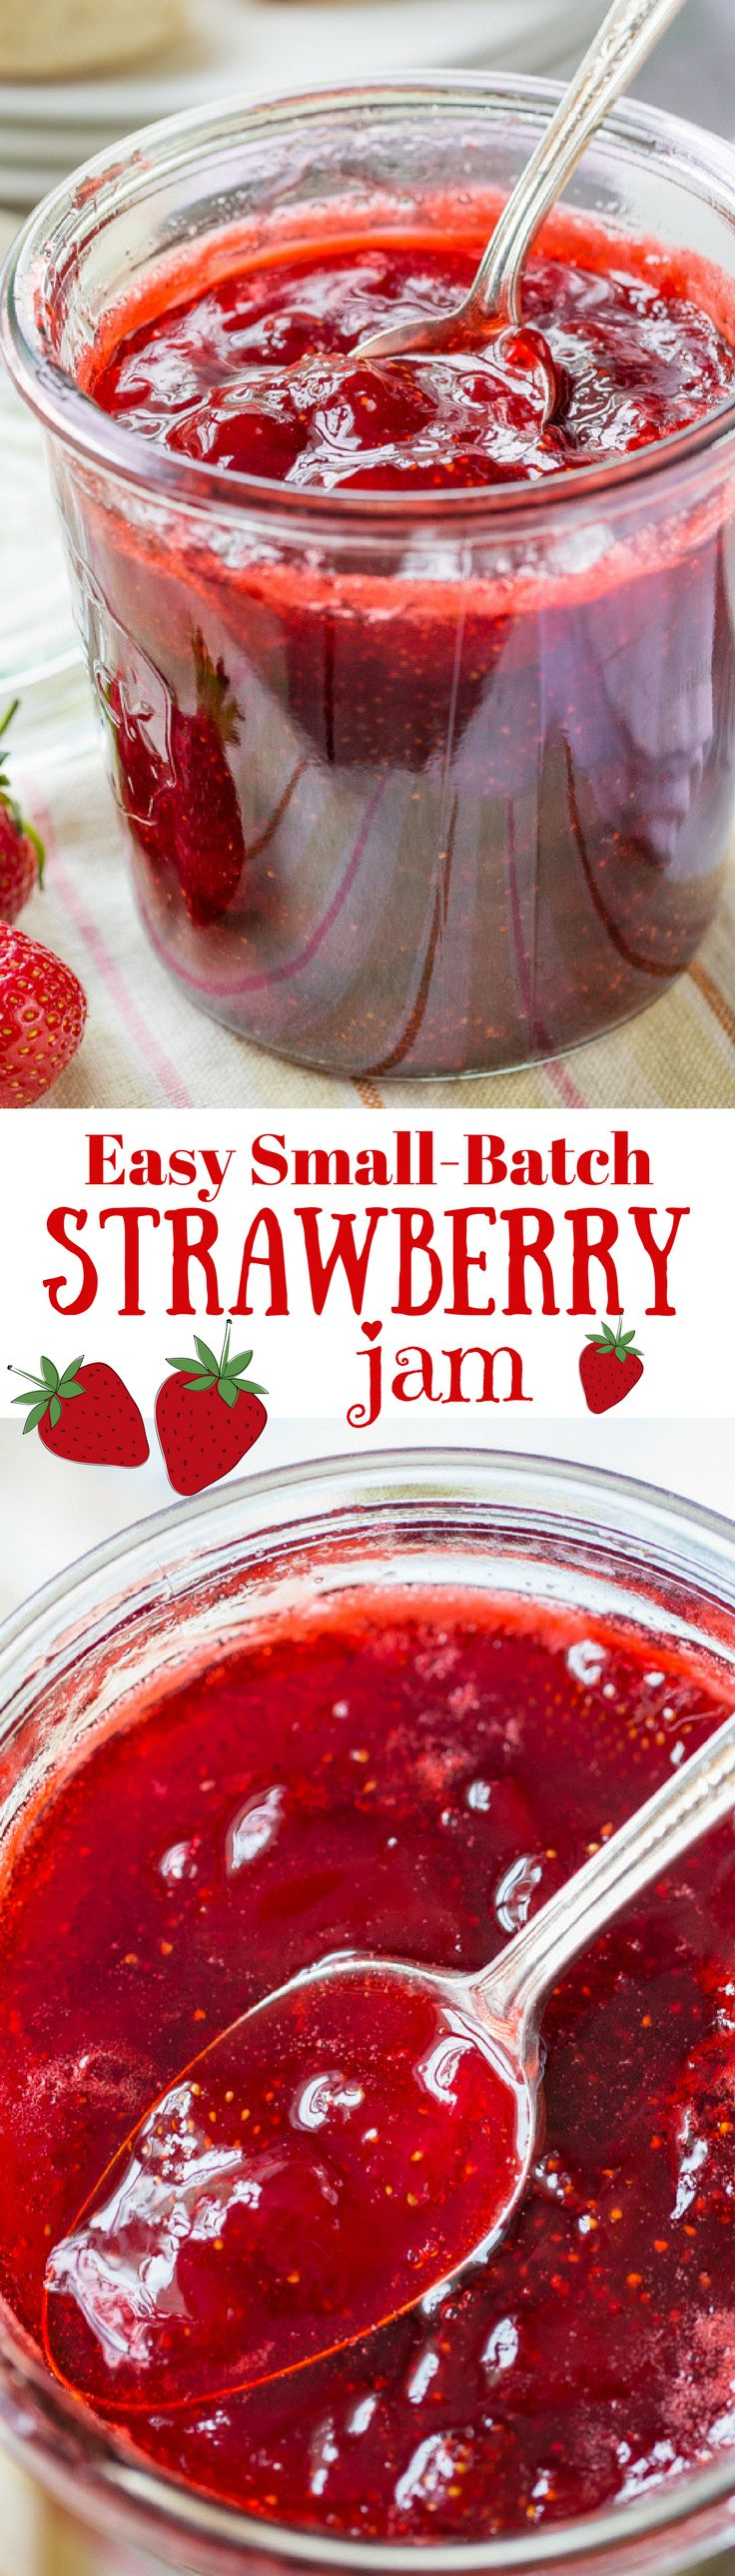 Easy Small-Batch Spiked Strawberry Jam with Grand Marnier | www.savingdessert.com